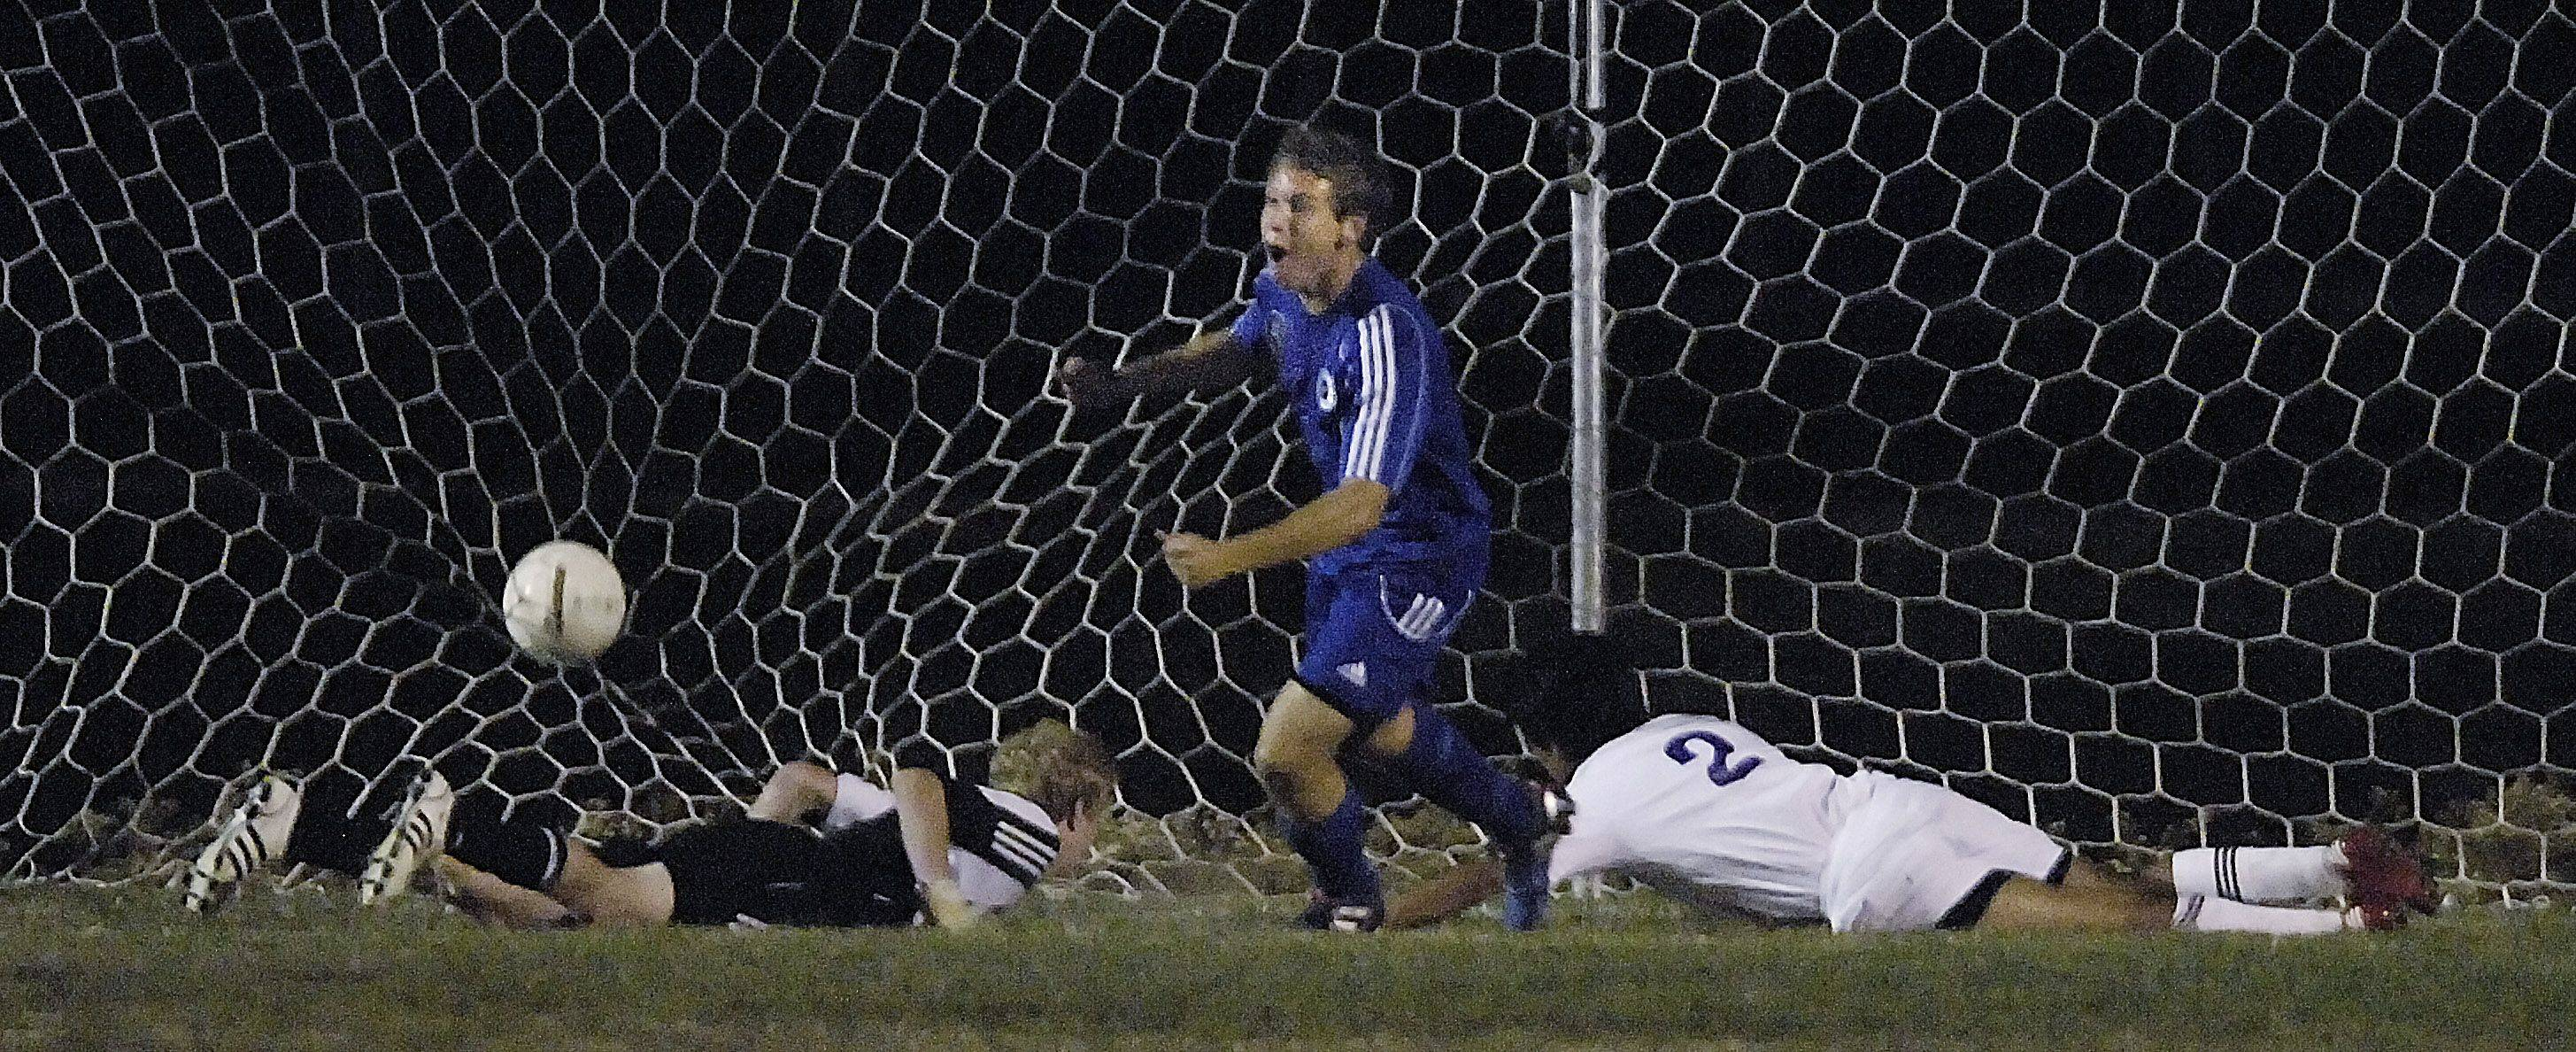 Burlington Central?s Christopher Gousios turns to his teammates as Hampshire goalkeeper Marcus Quick and midfielder Michael Gonzales lay on the turf following a goal Tuesday for the conference championship.